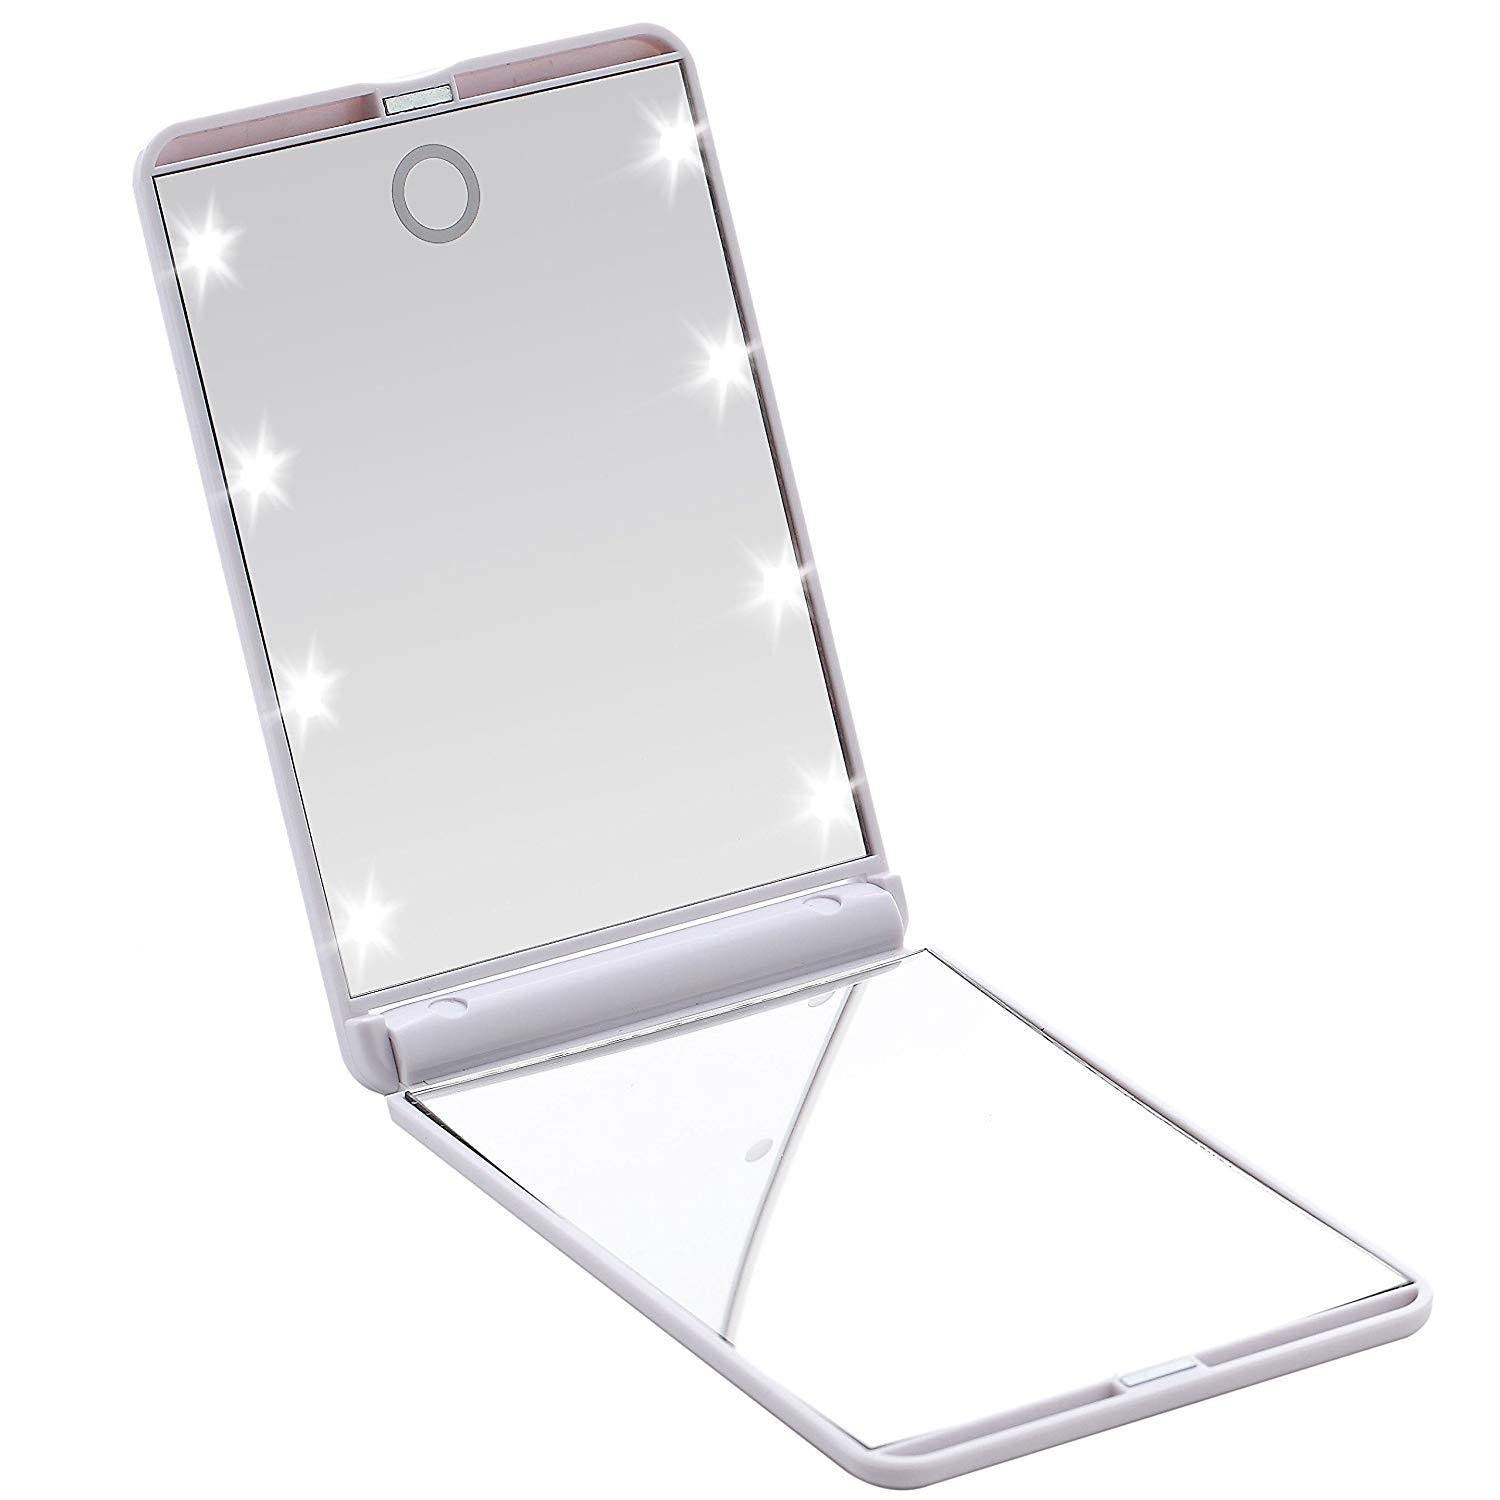 LED Light Compact Mirror